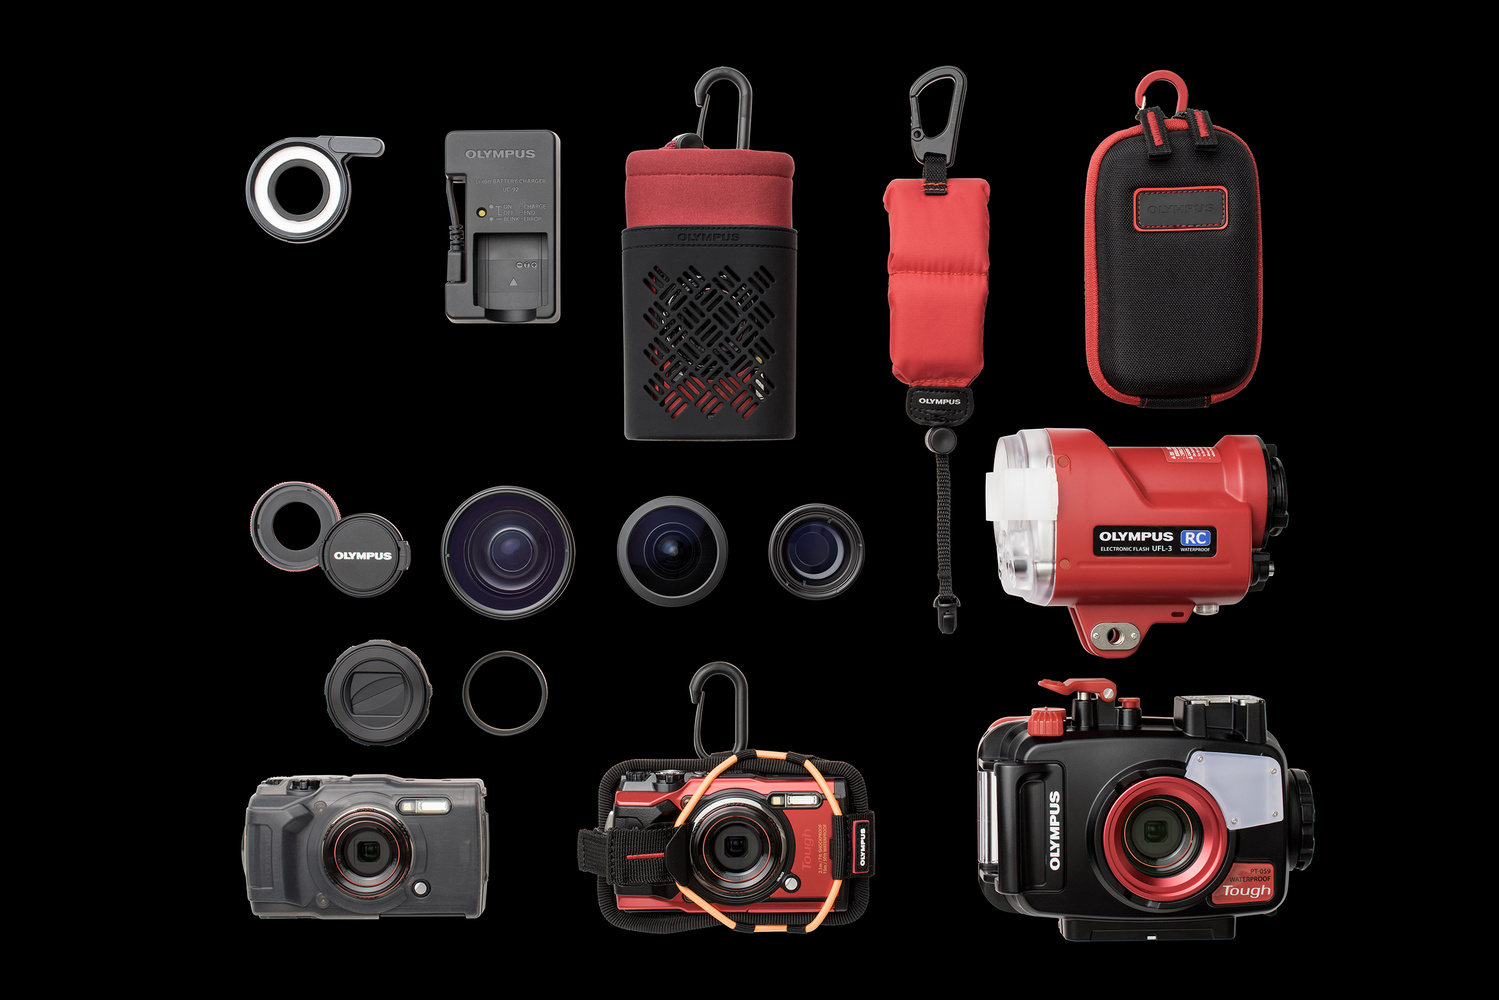 accessories for the olympus TG-6